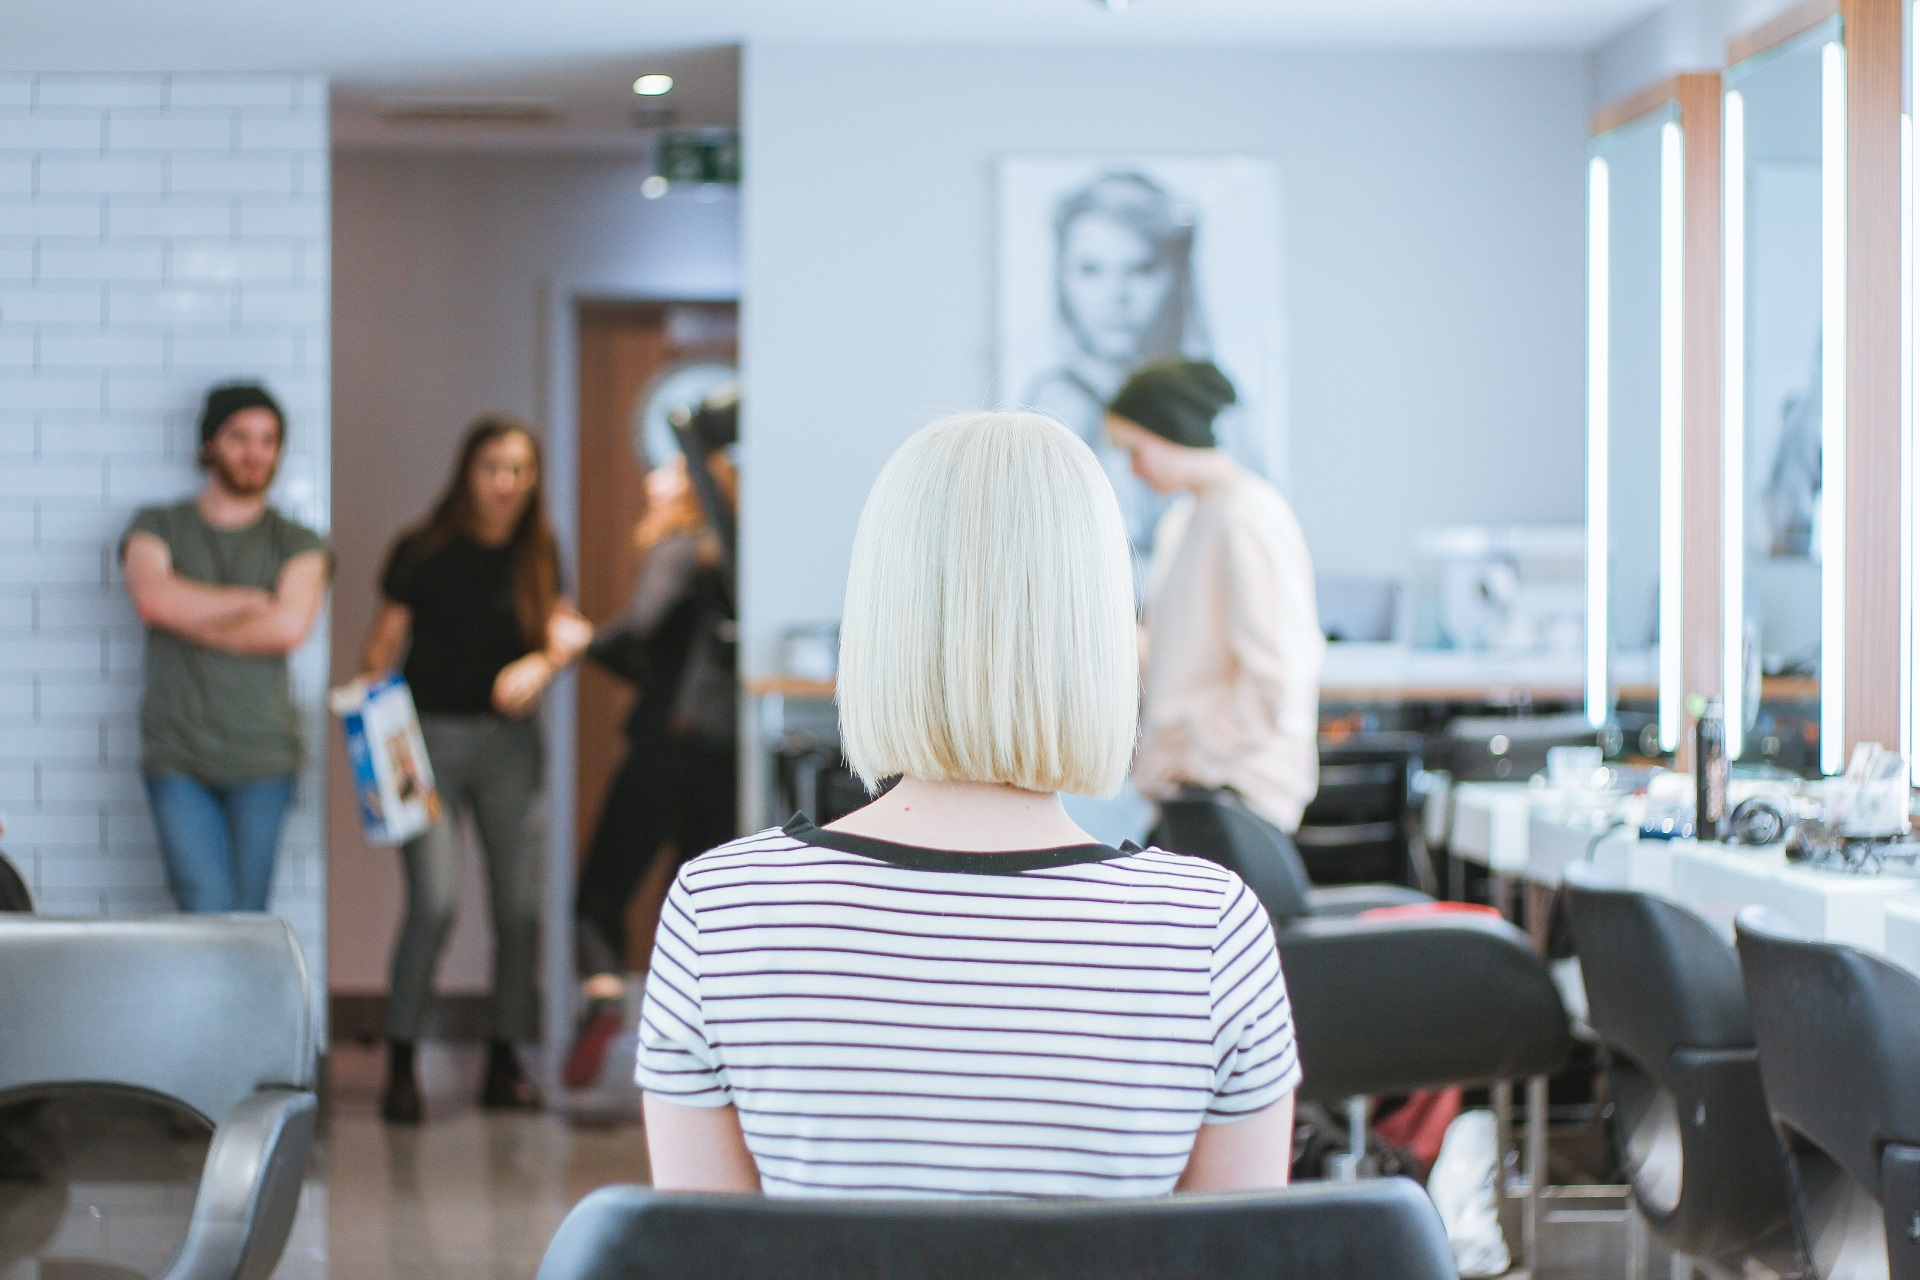 A website can help bring more customers to salons.